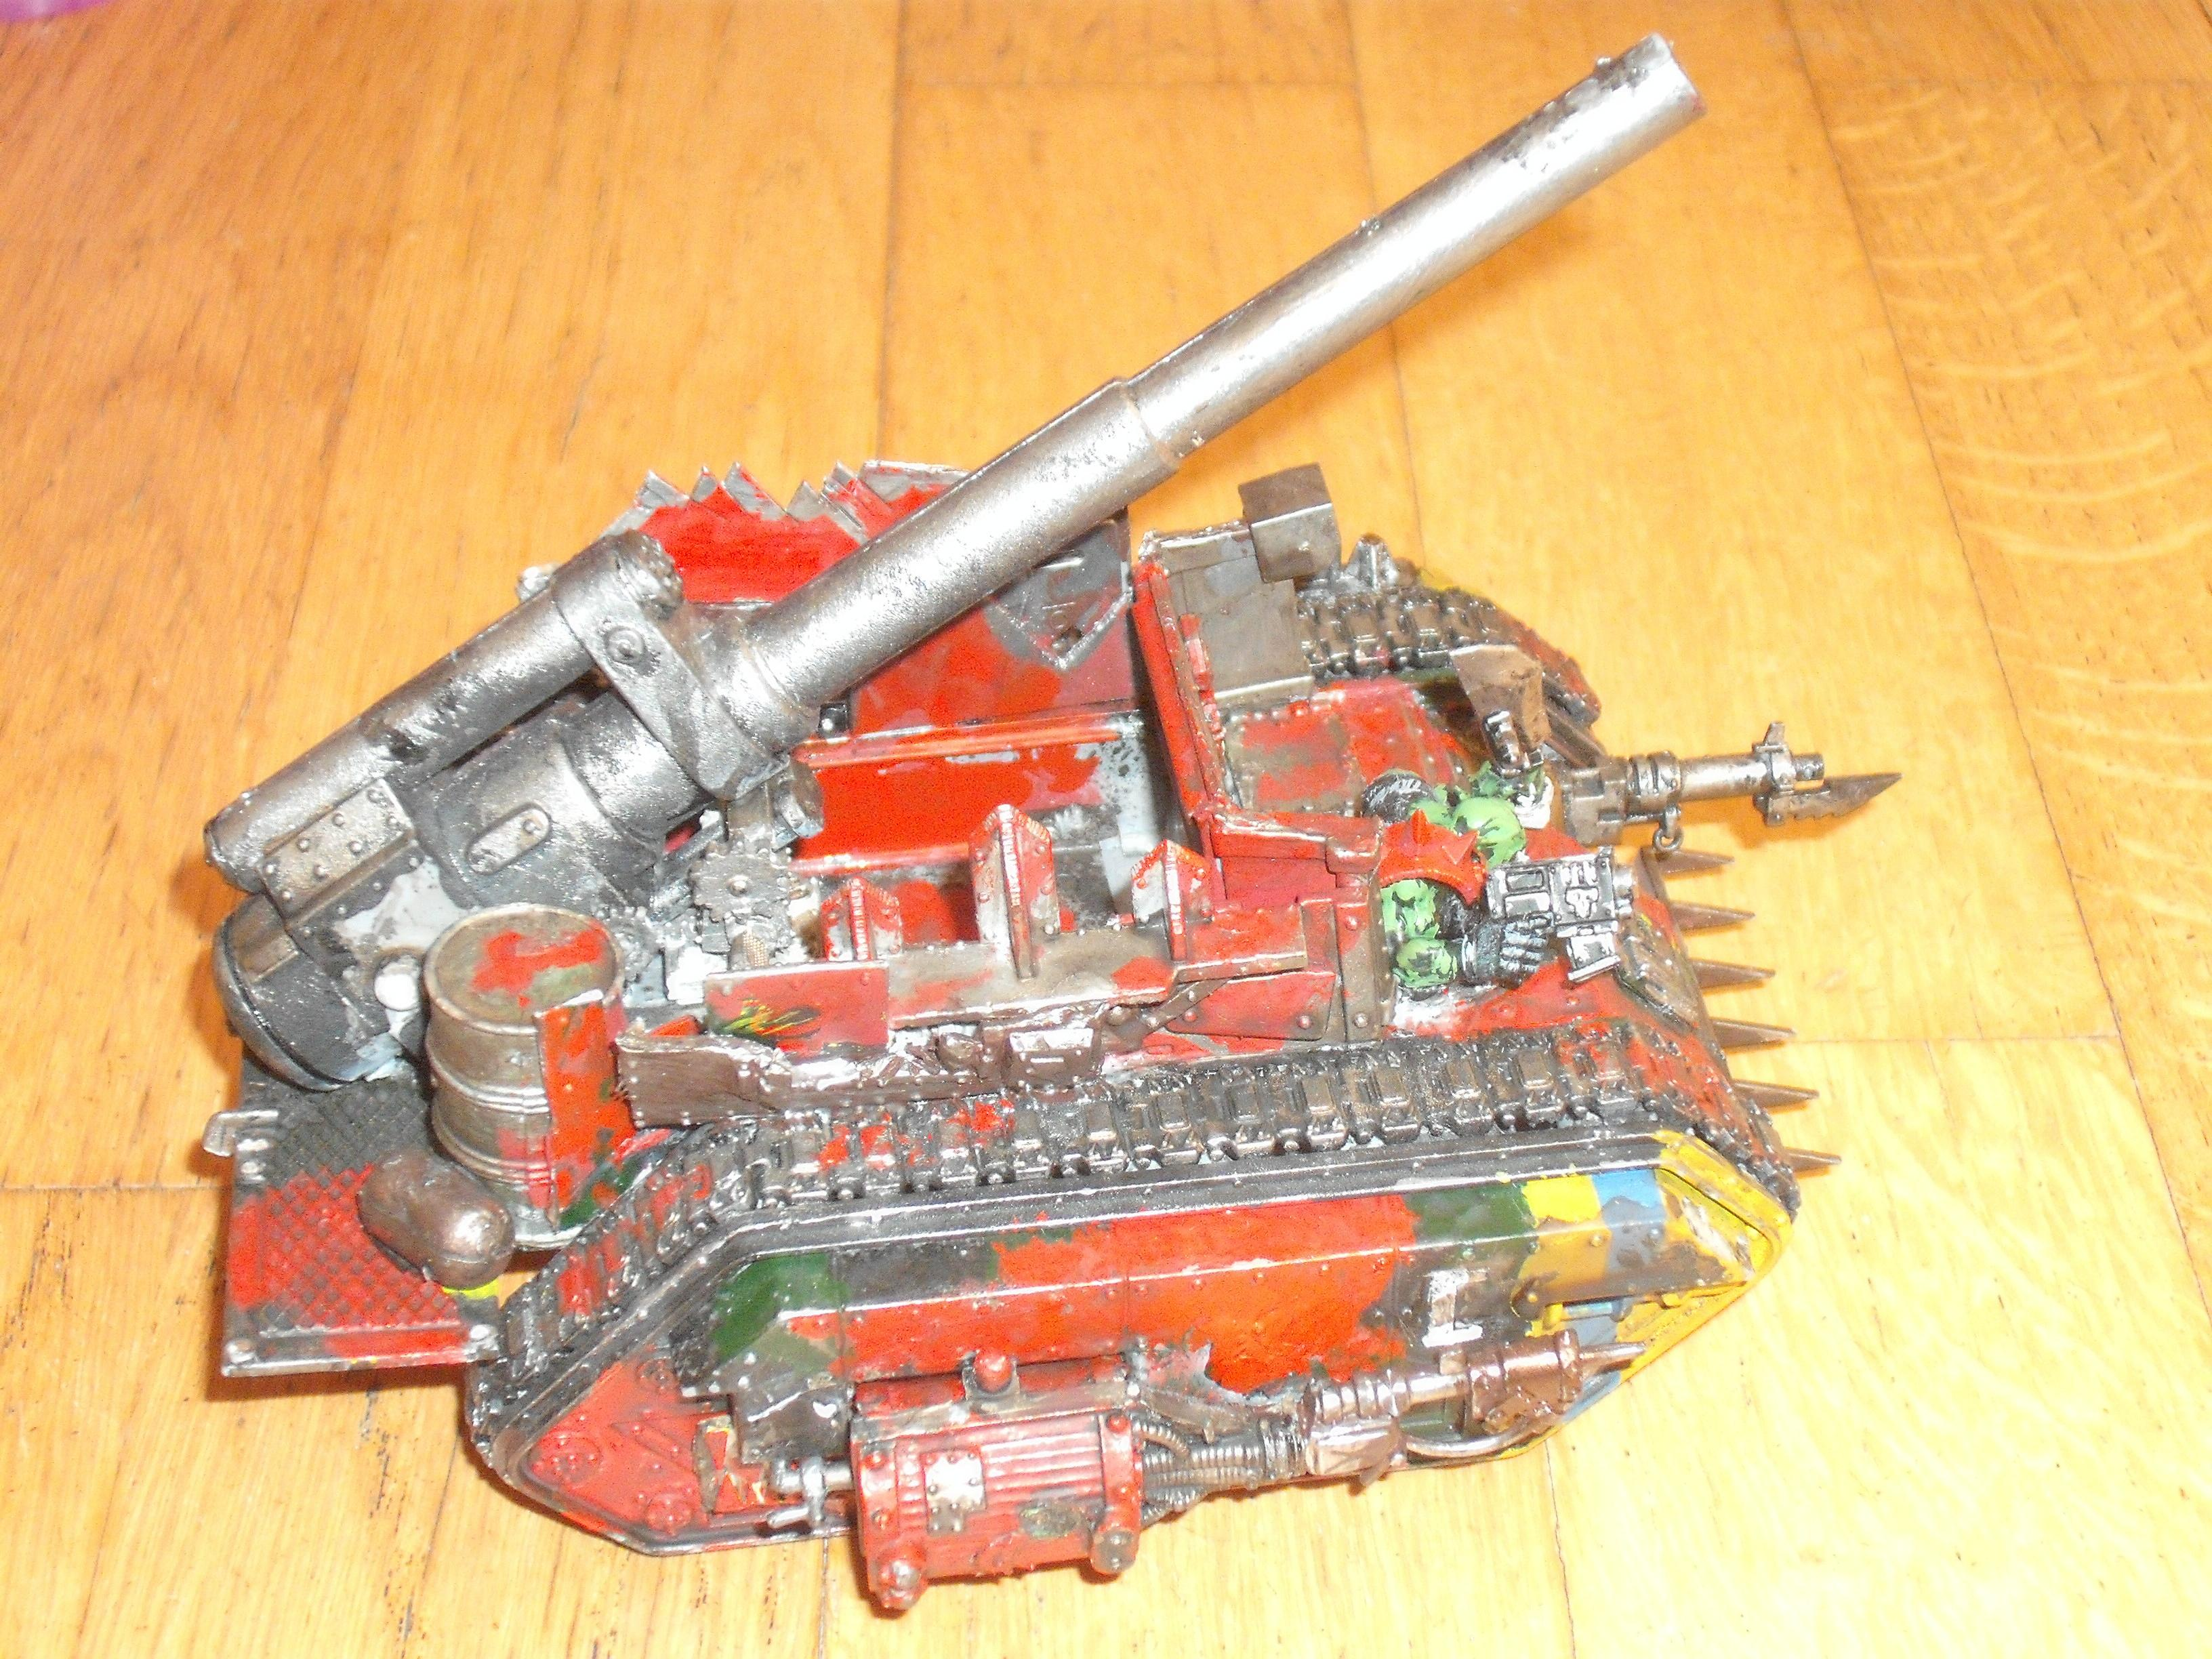 Ork looted vehicle of some description-side view